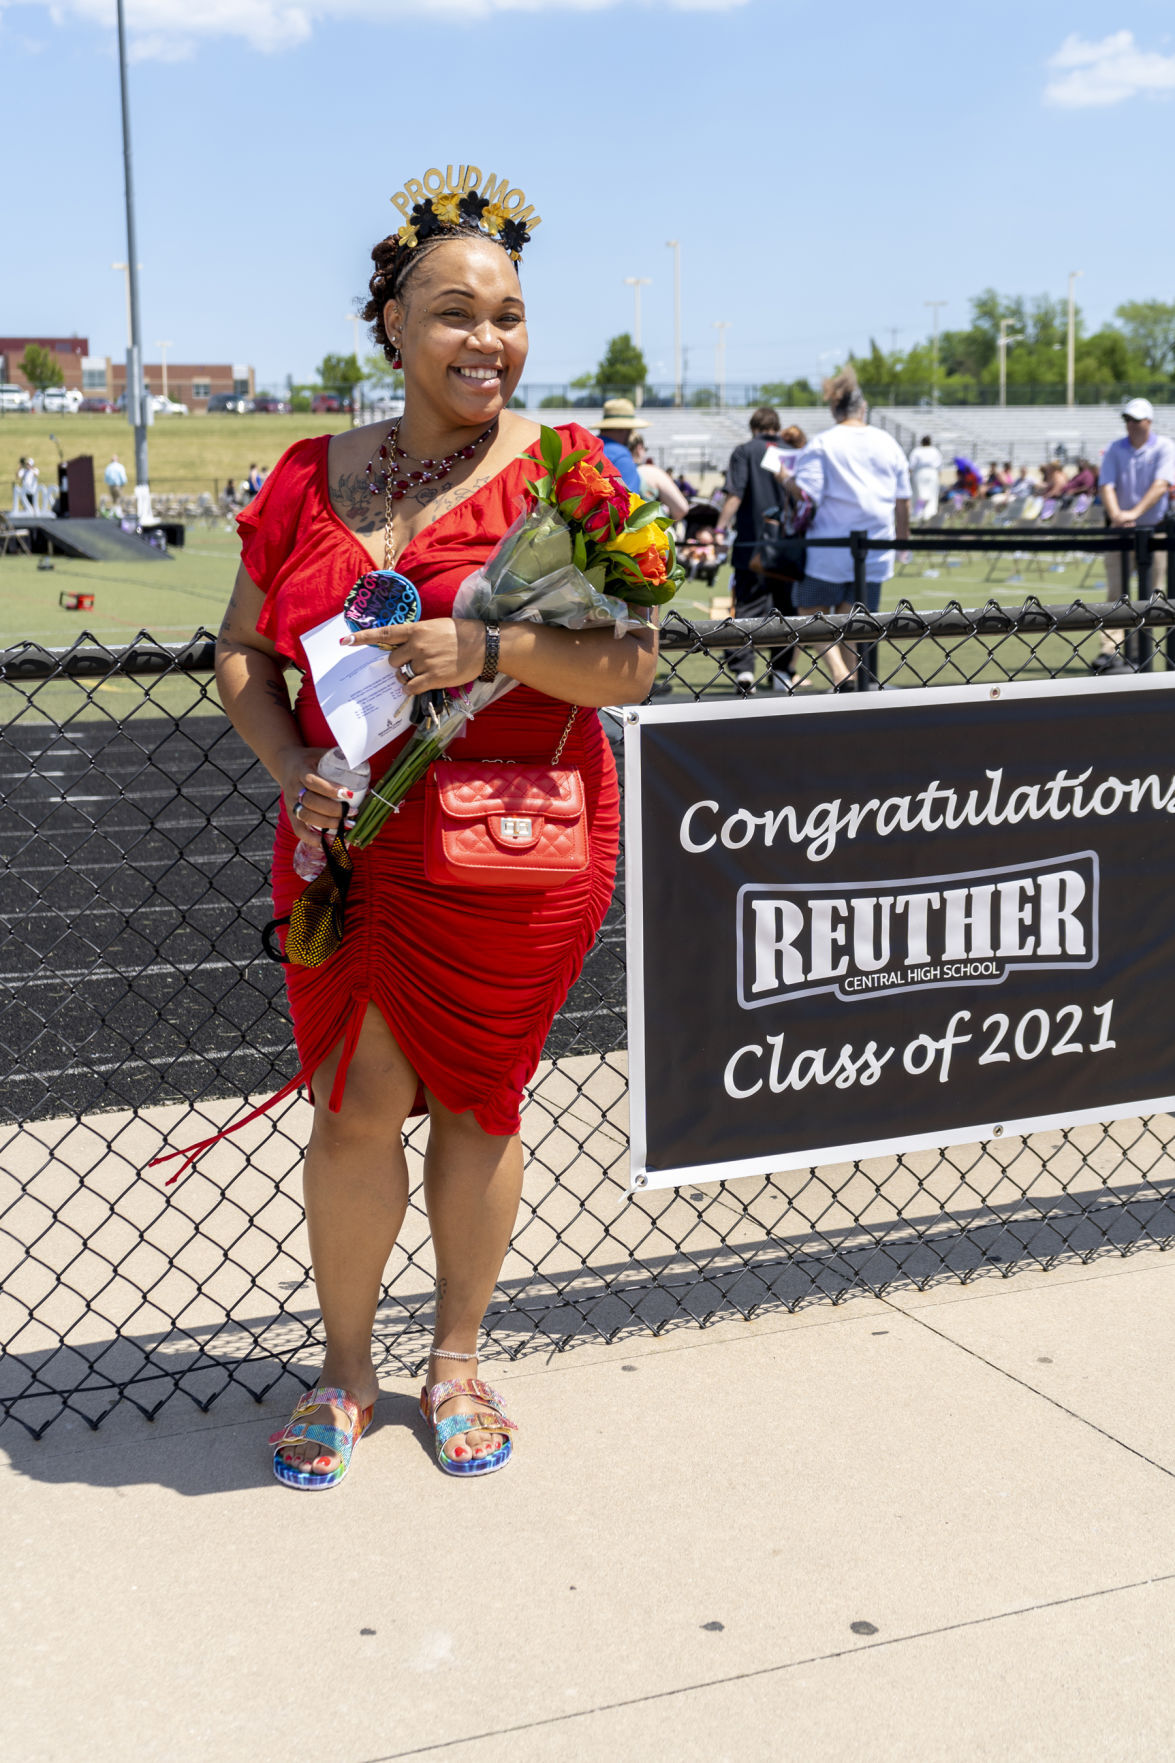 Reuther High School Class of 2021 commencement